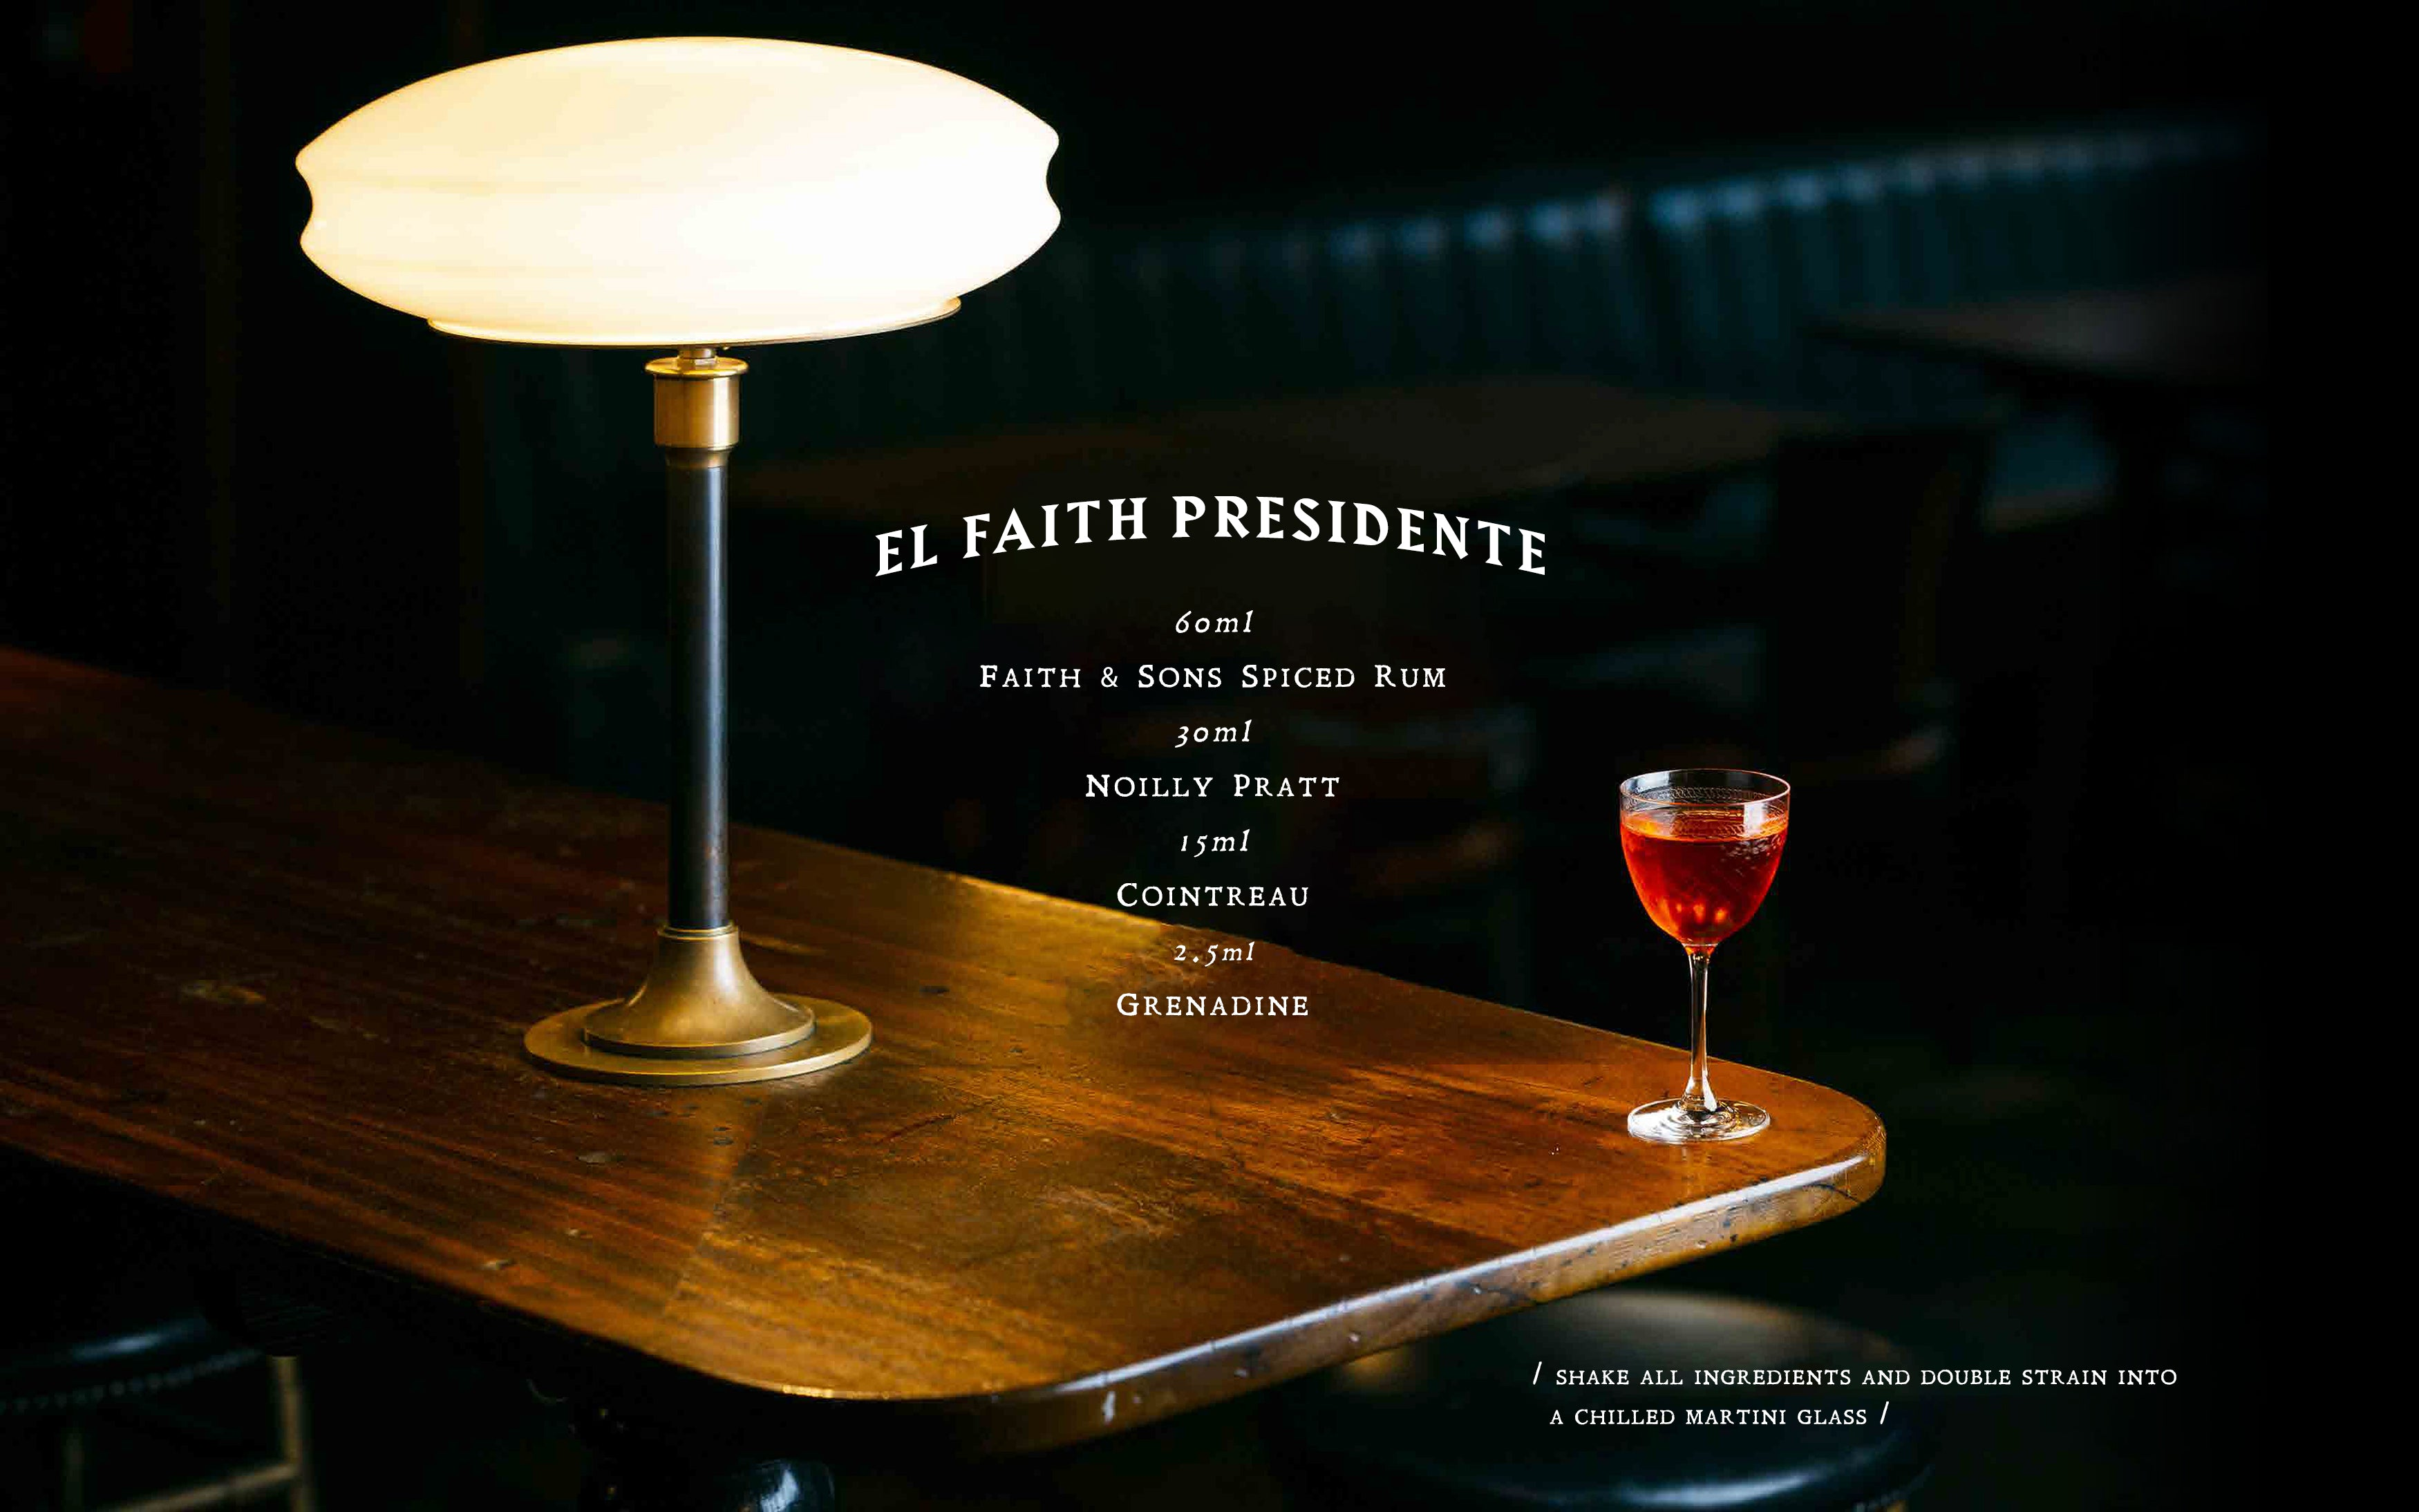 El Faith Presidente